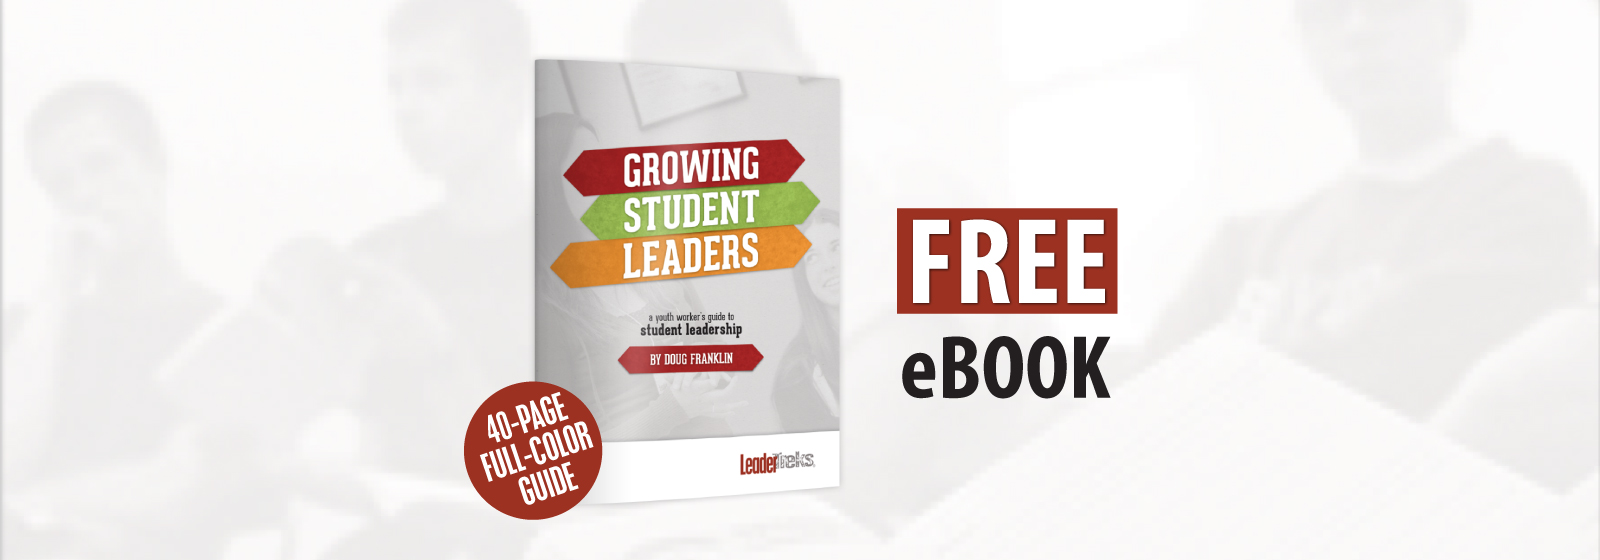 Simply youth ministry freebies downloads